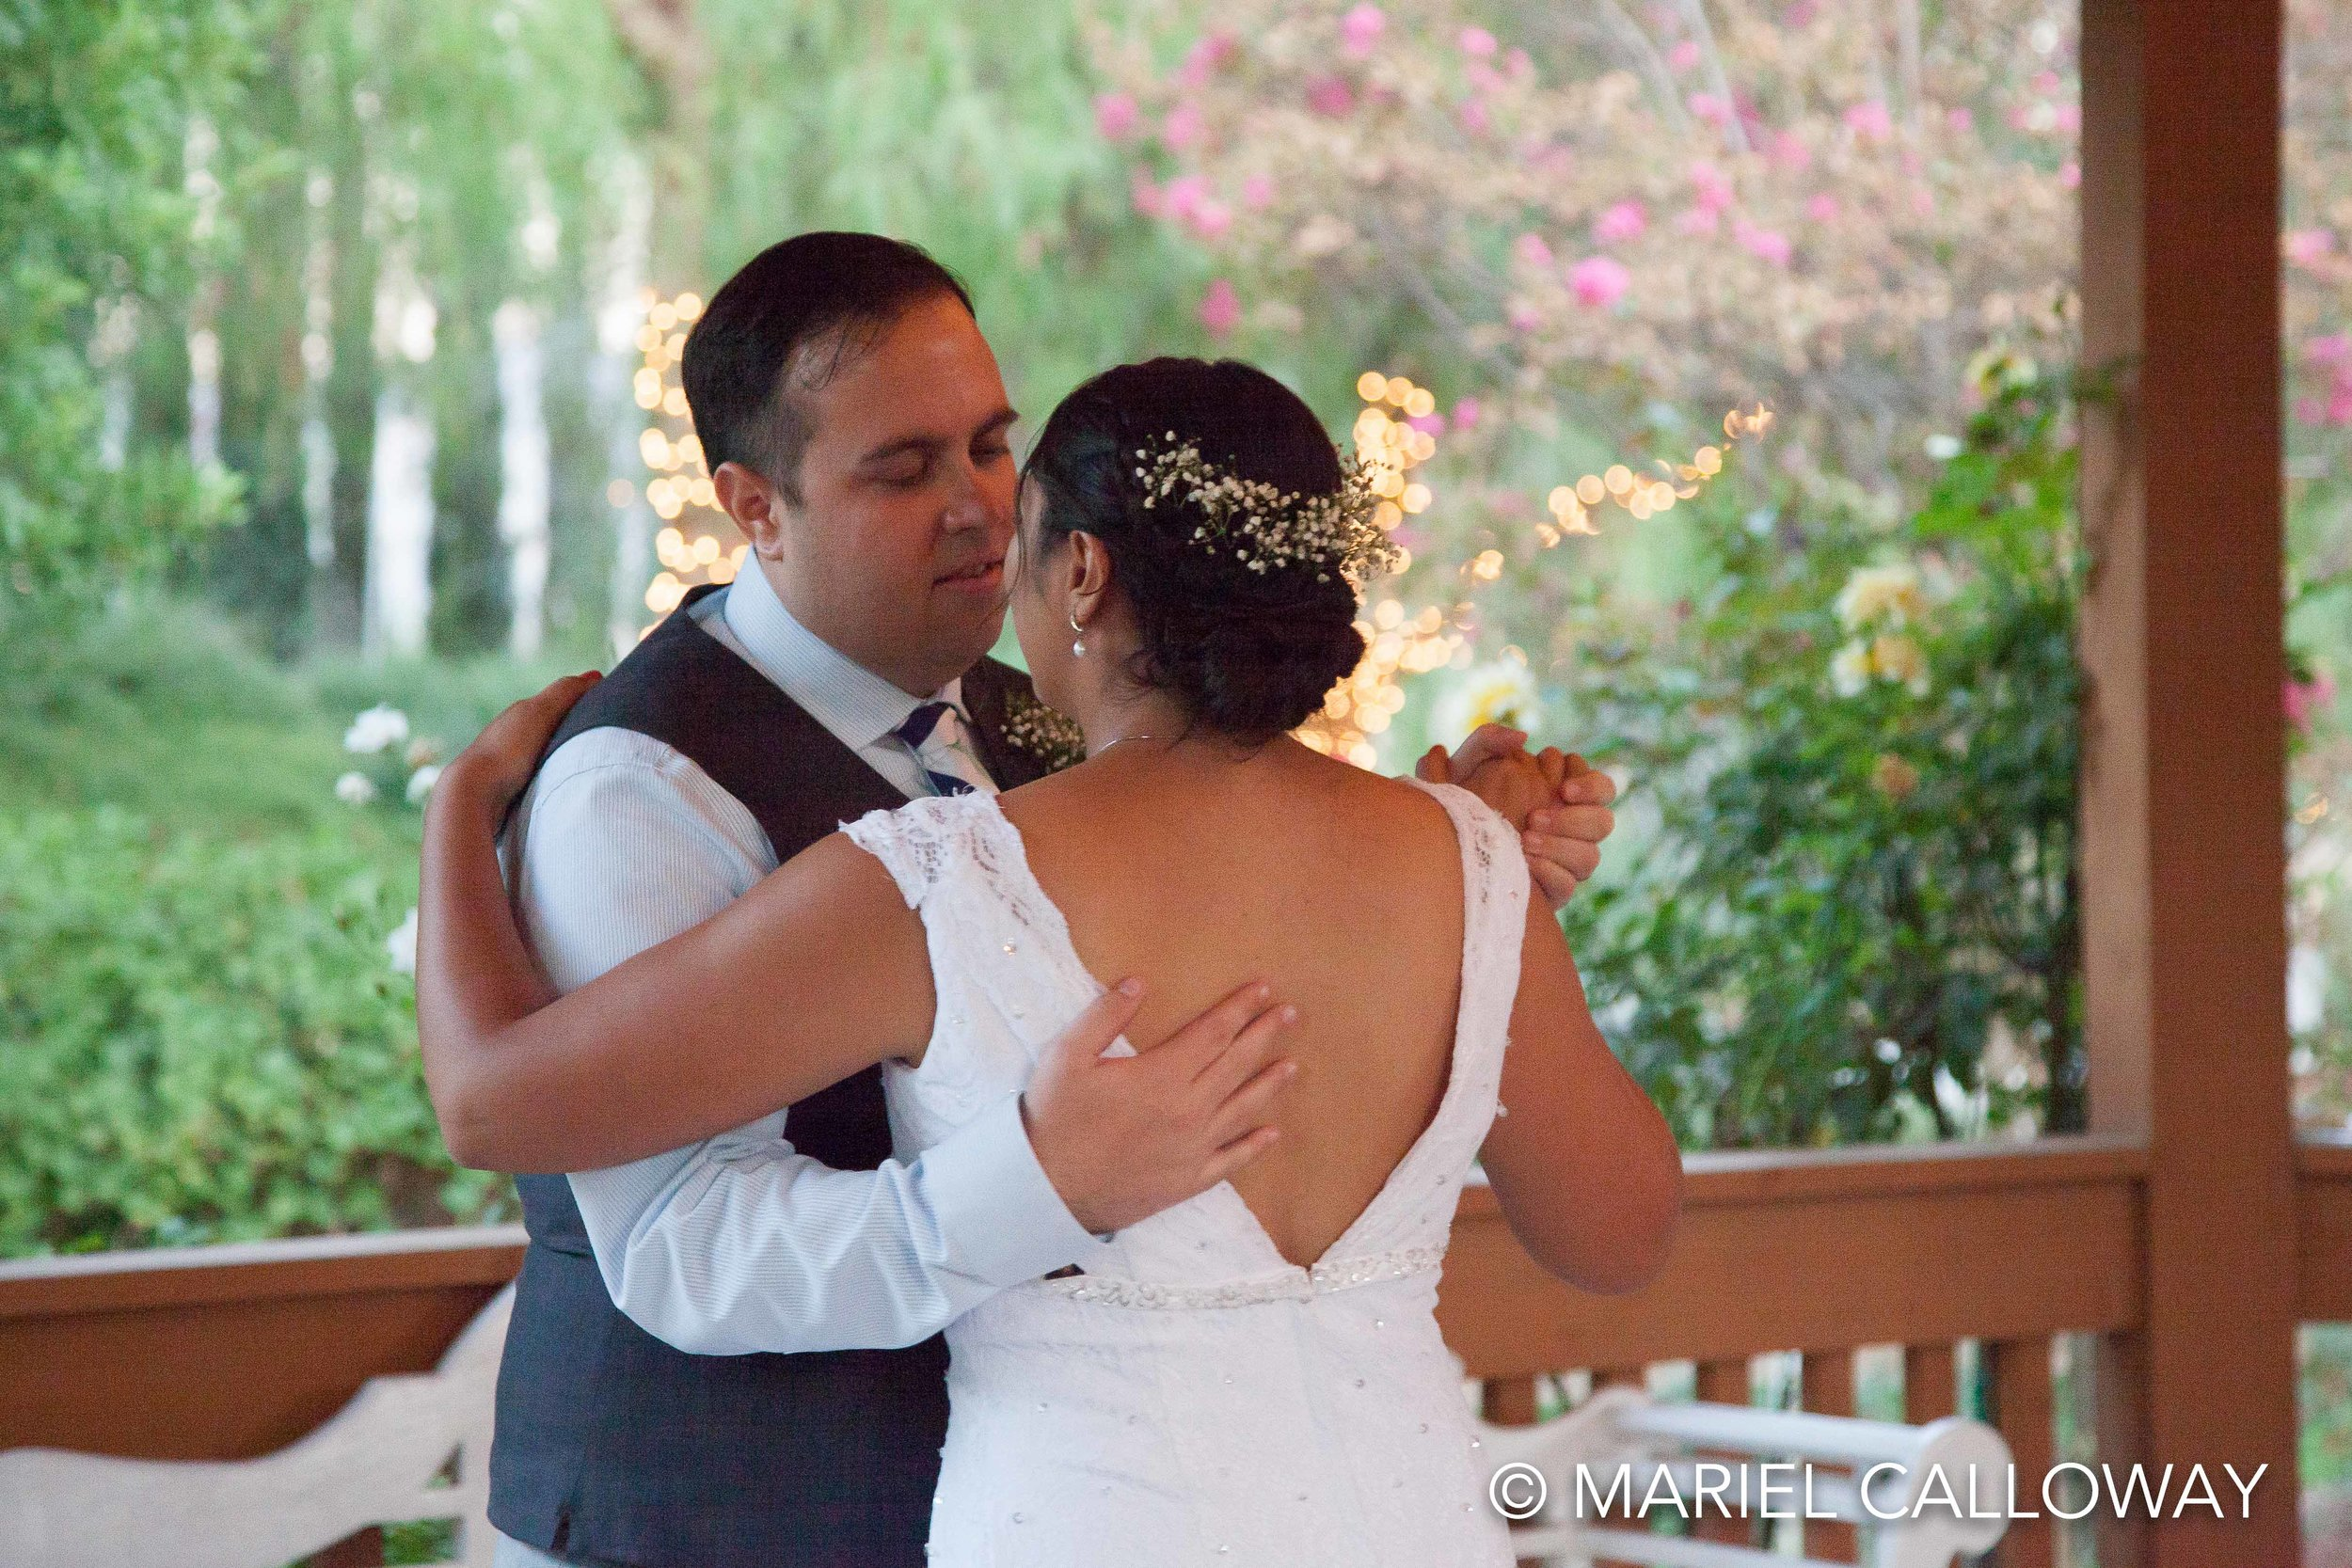 Mariel-Calloway-Wedding-Photographer-Los-Angeles-NatRory-27.jpg